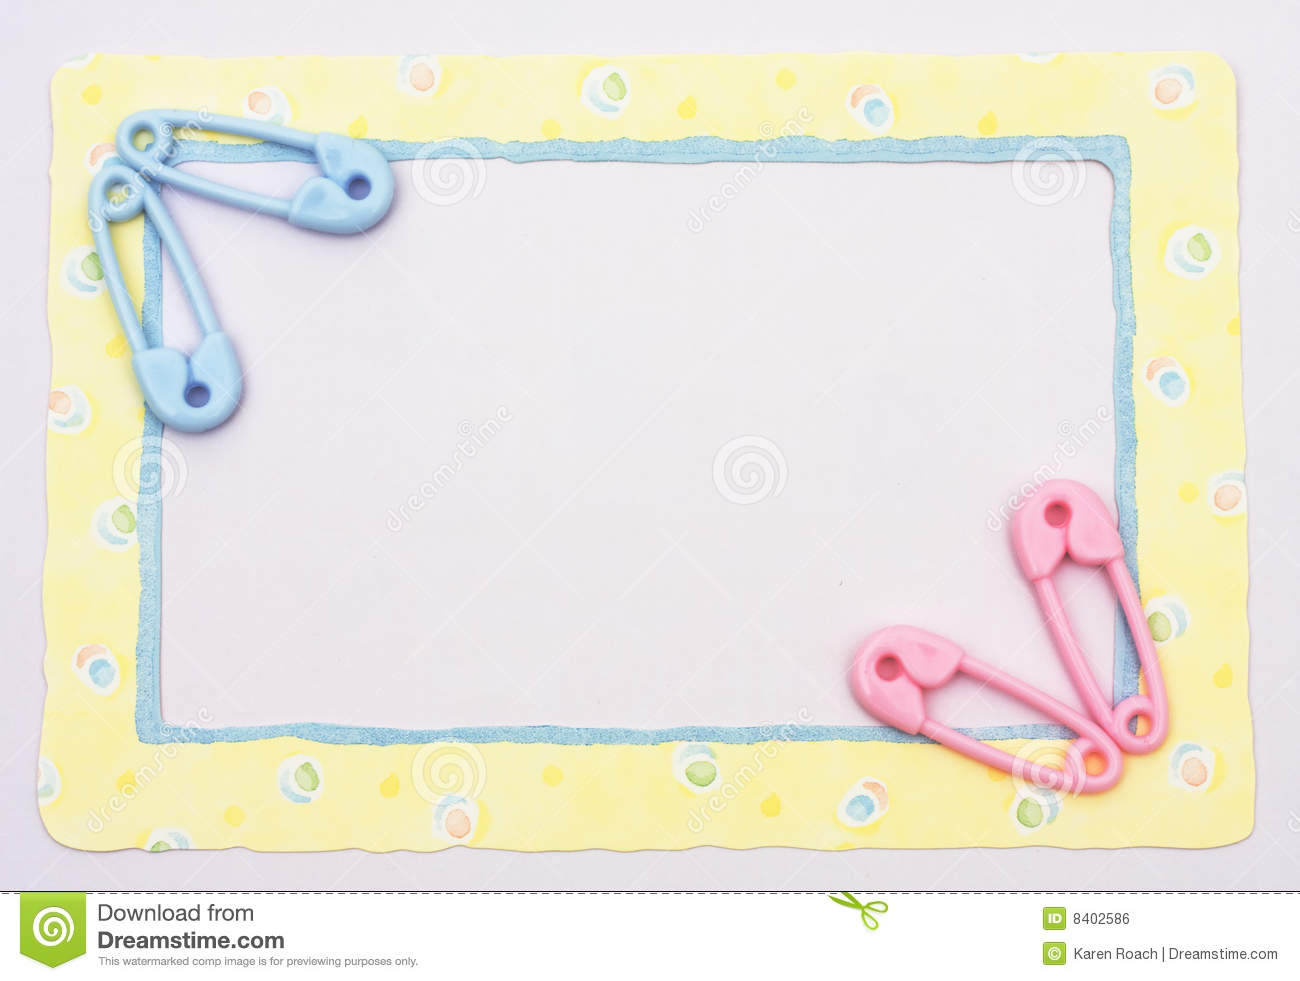 Blue diaper pins sitting on a yellow alphabet background baby border